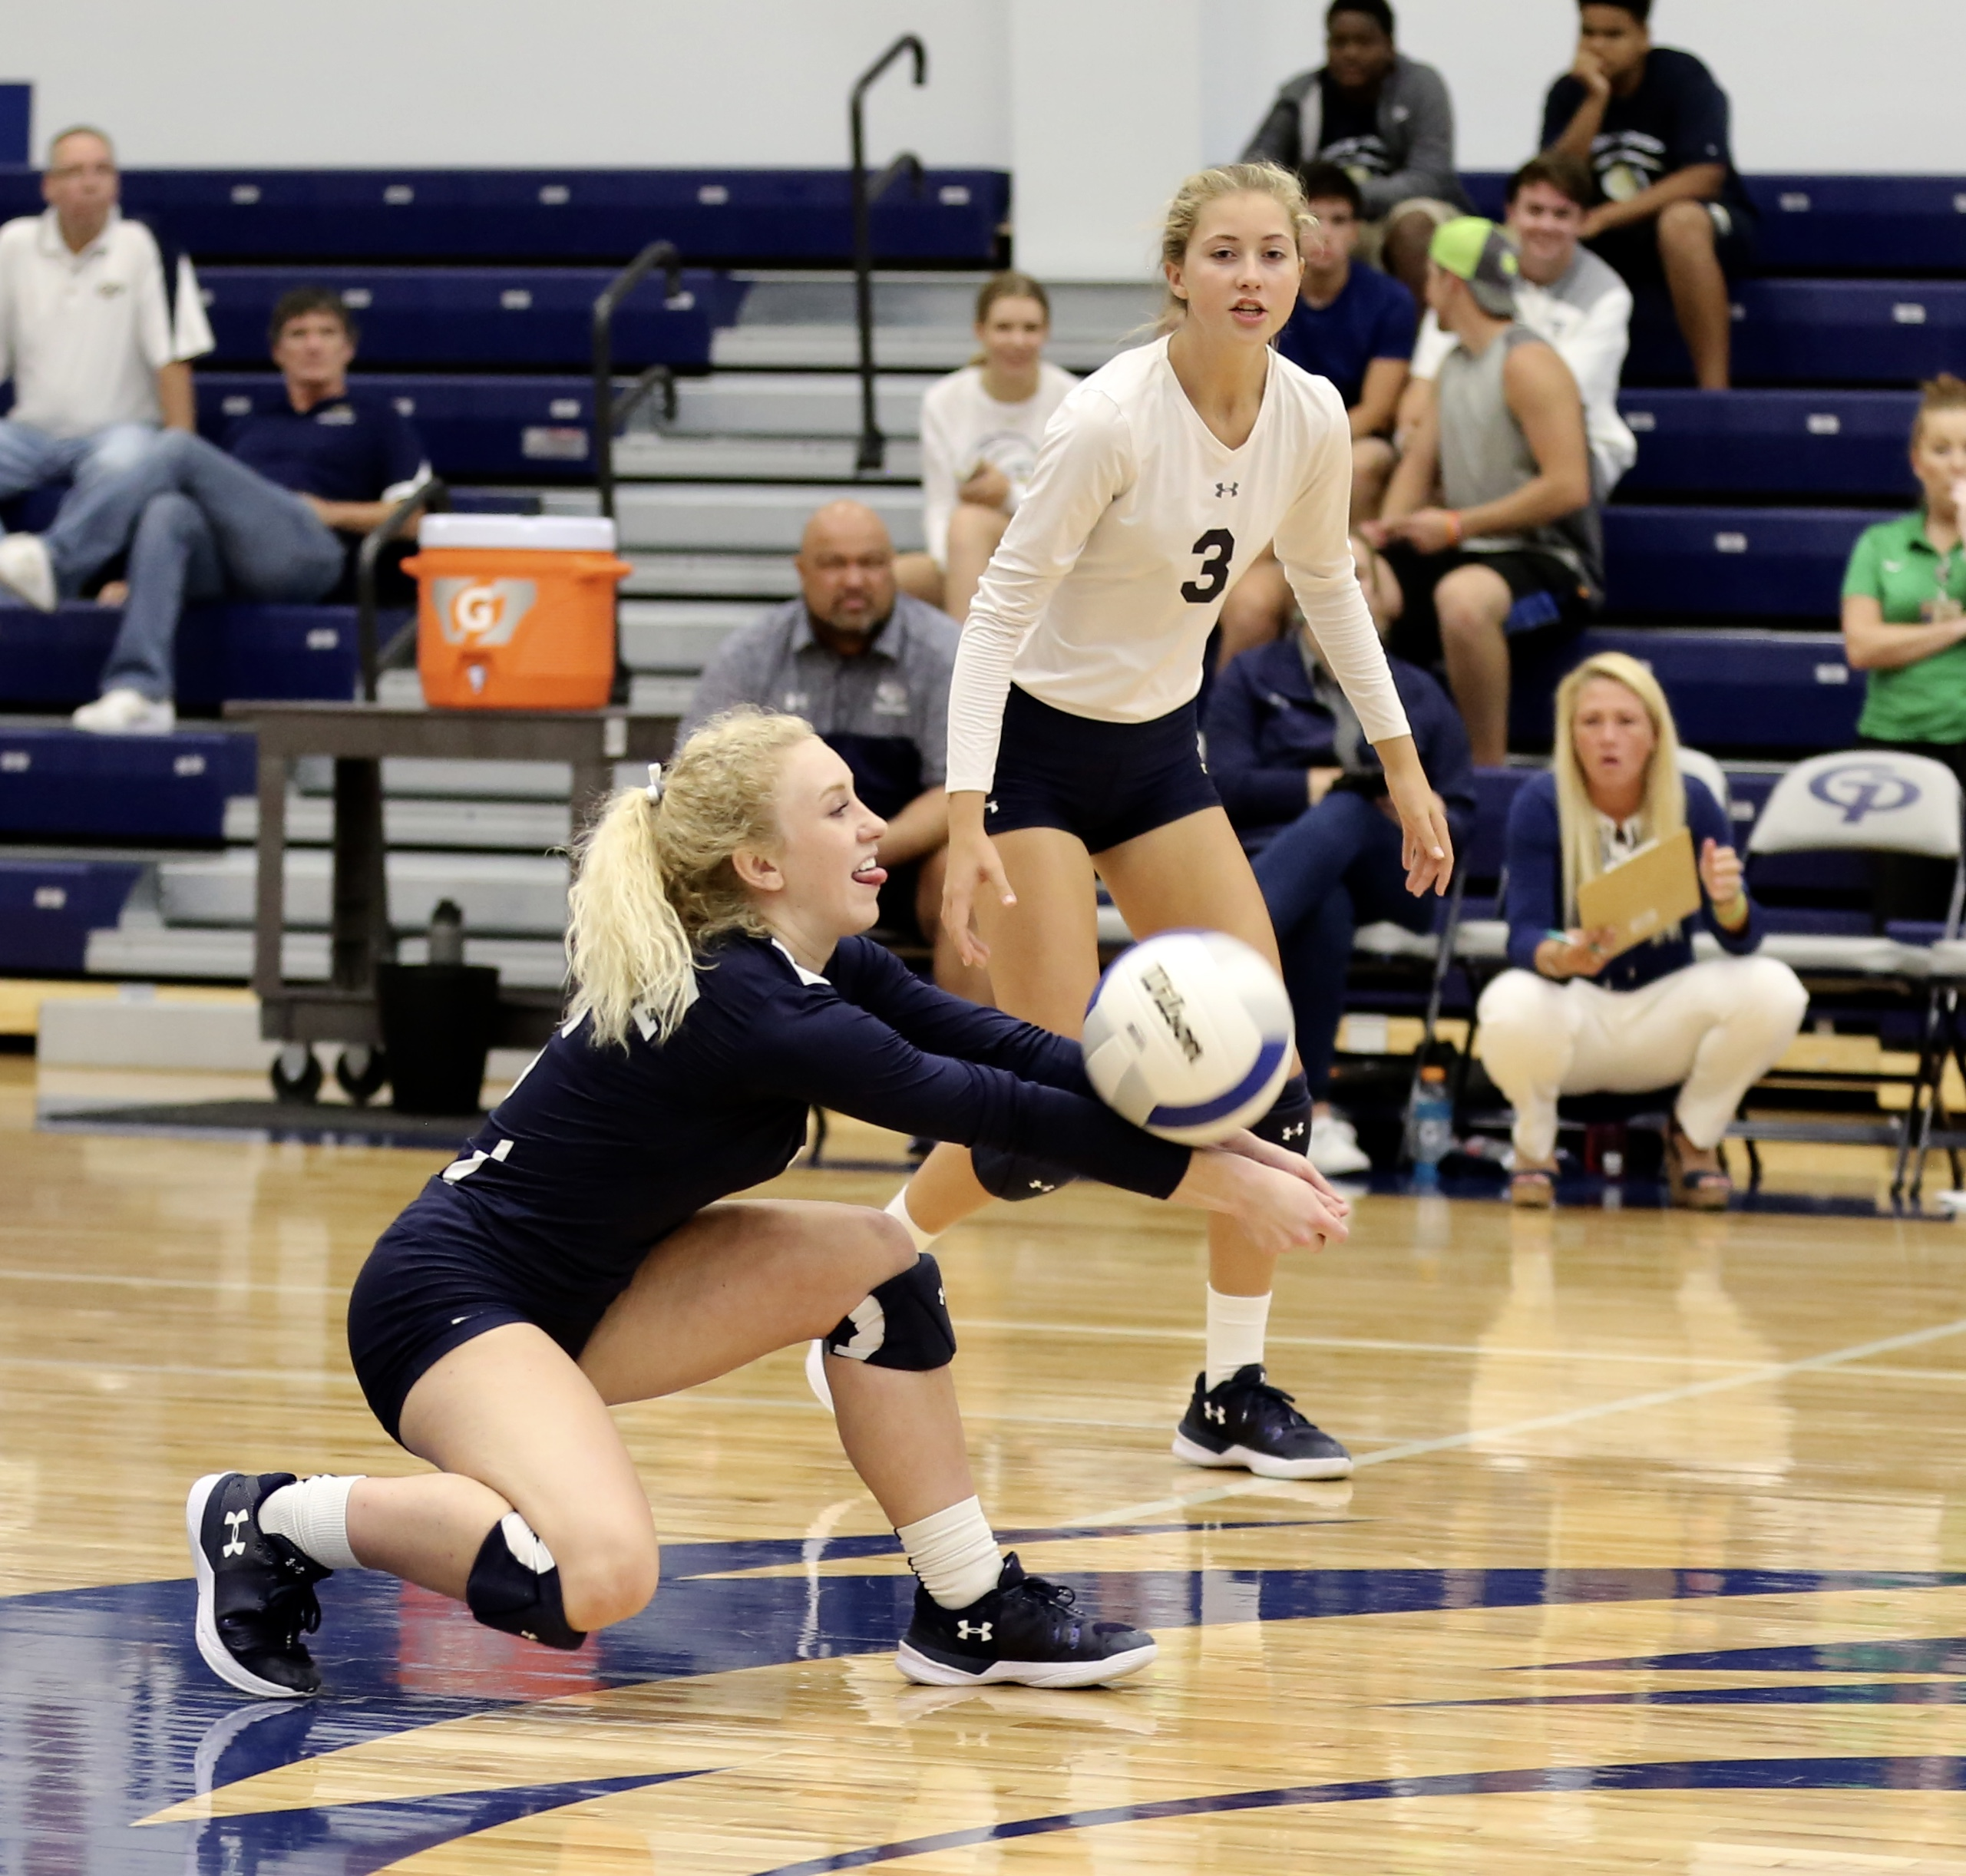 Volleyball Begins Its Playoff Run